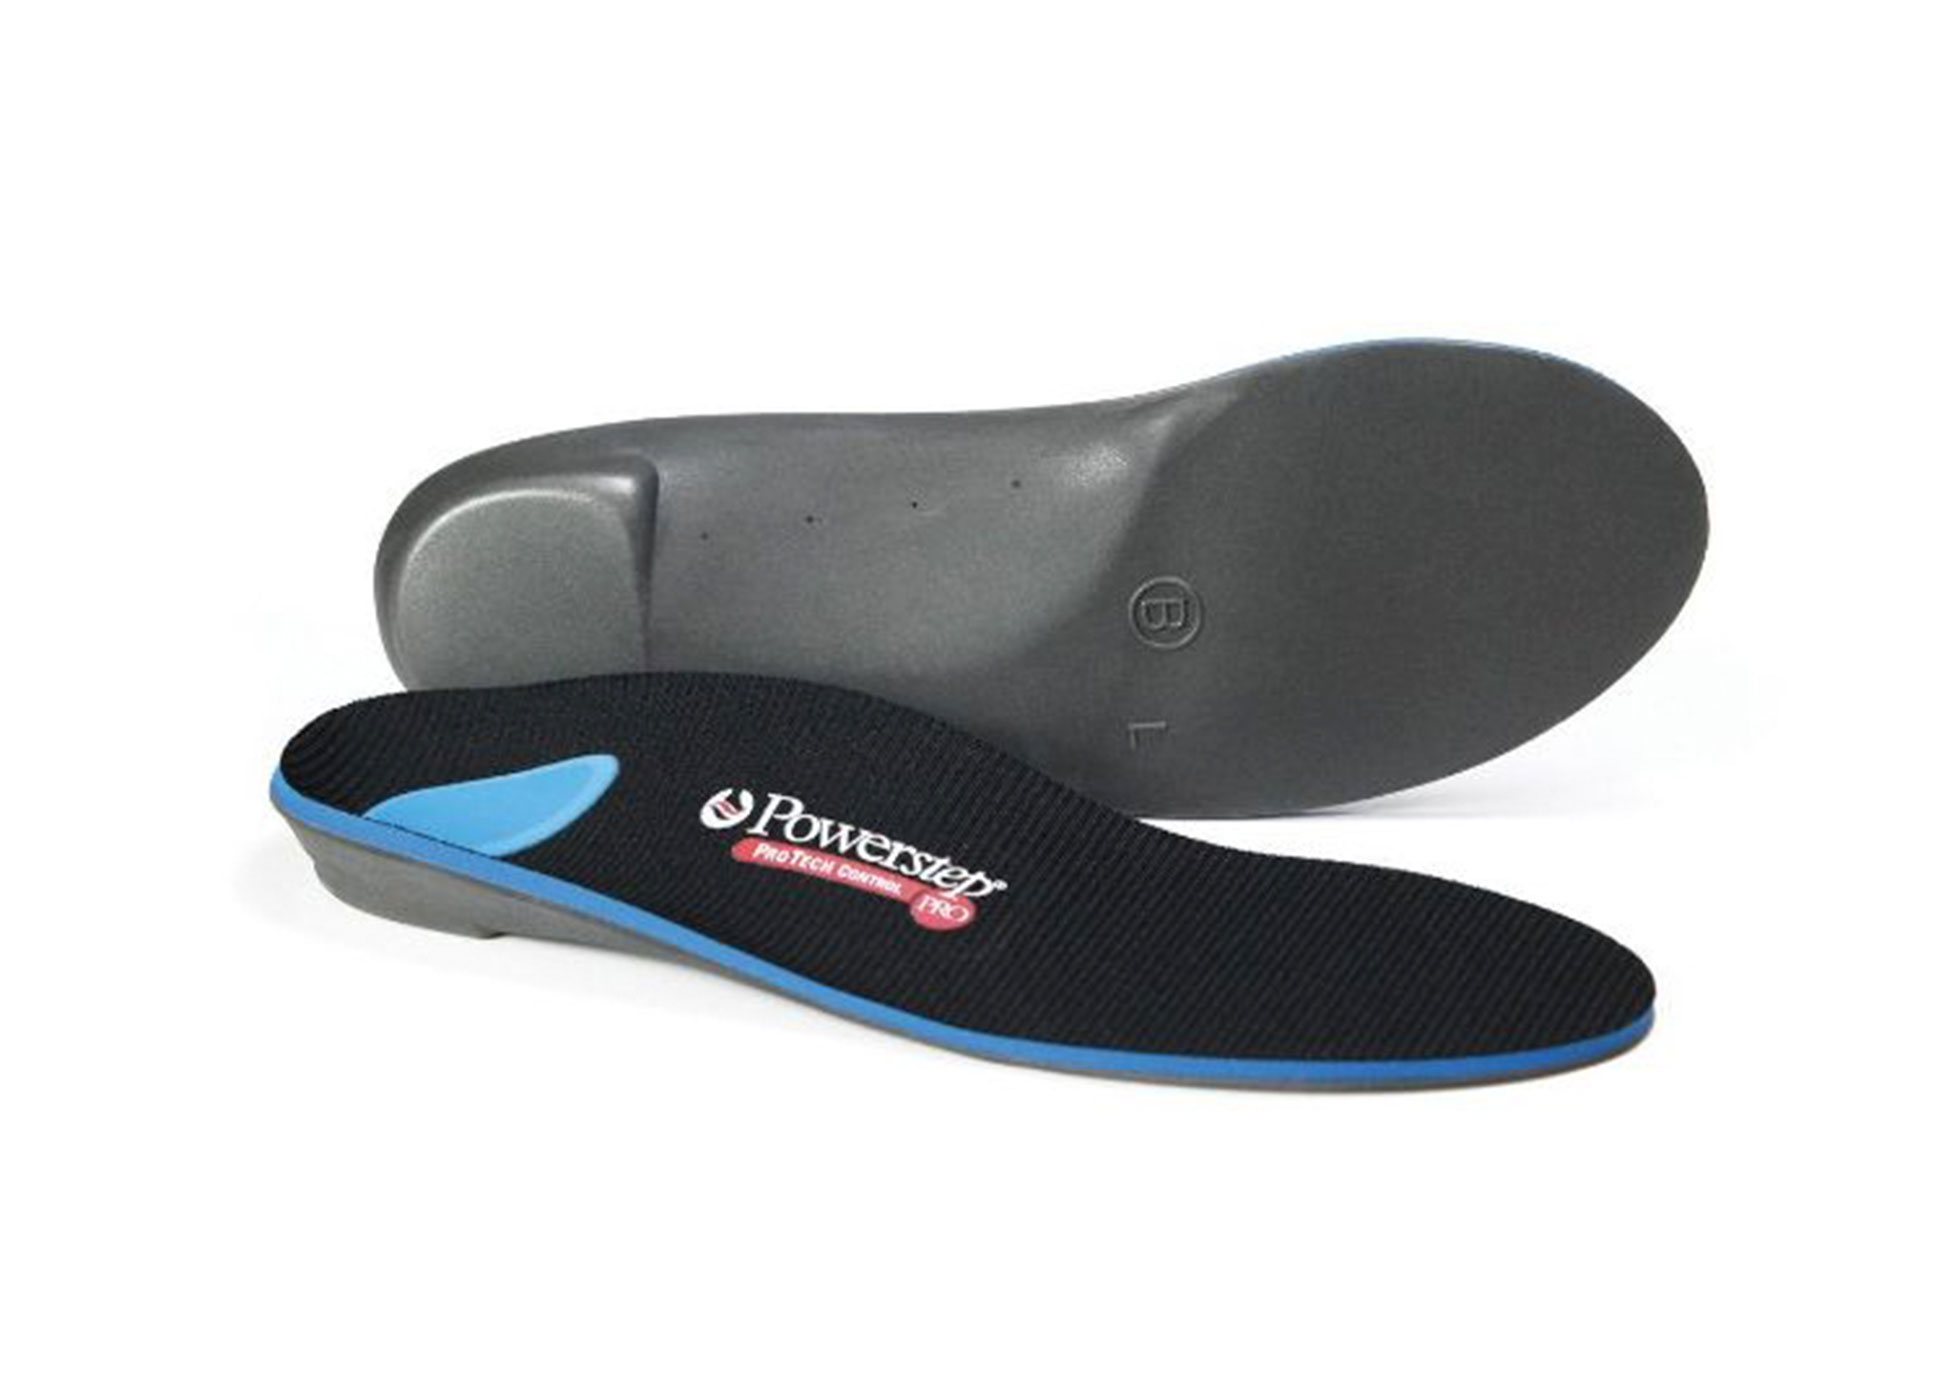 Carnation Footcare - Powerstep Pro - Code H - Mens - 10 - 10.5 / Womens - 11.5 - 12 - Per Pair Insoles